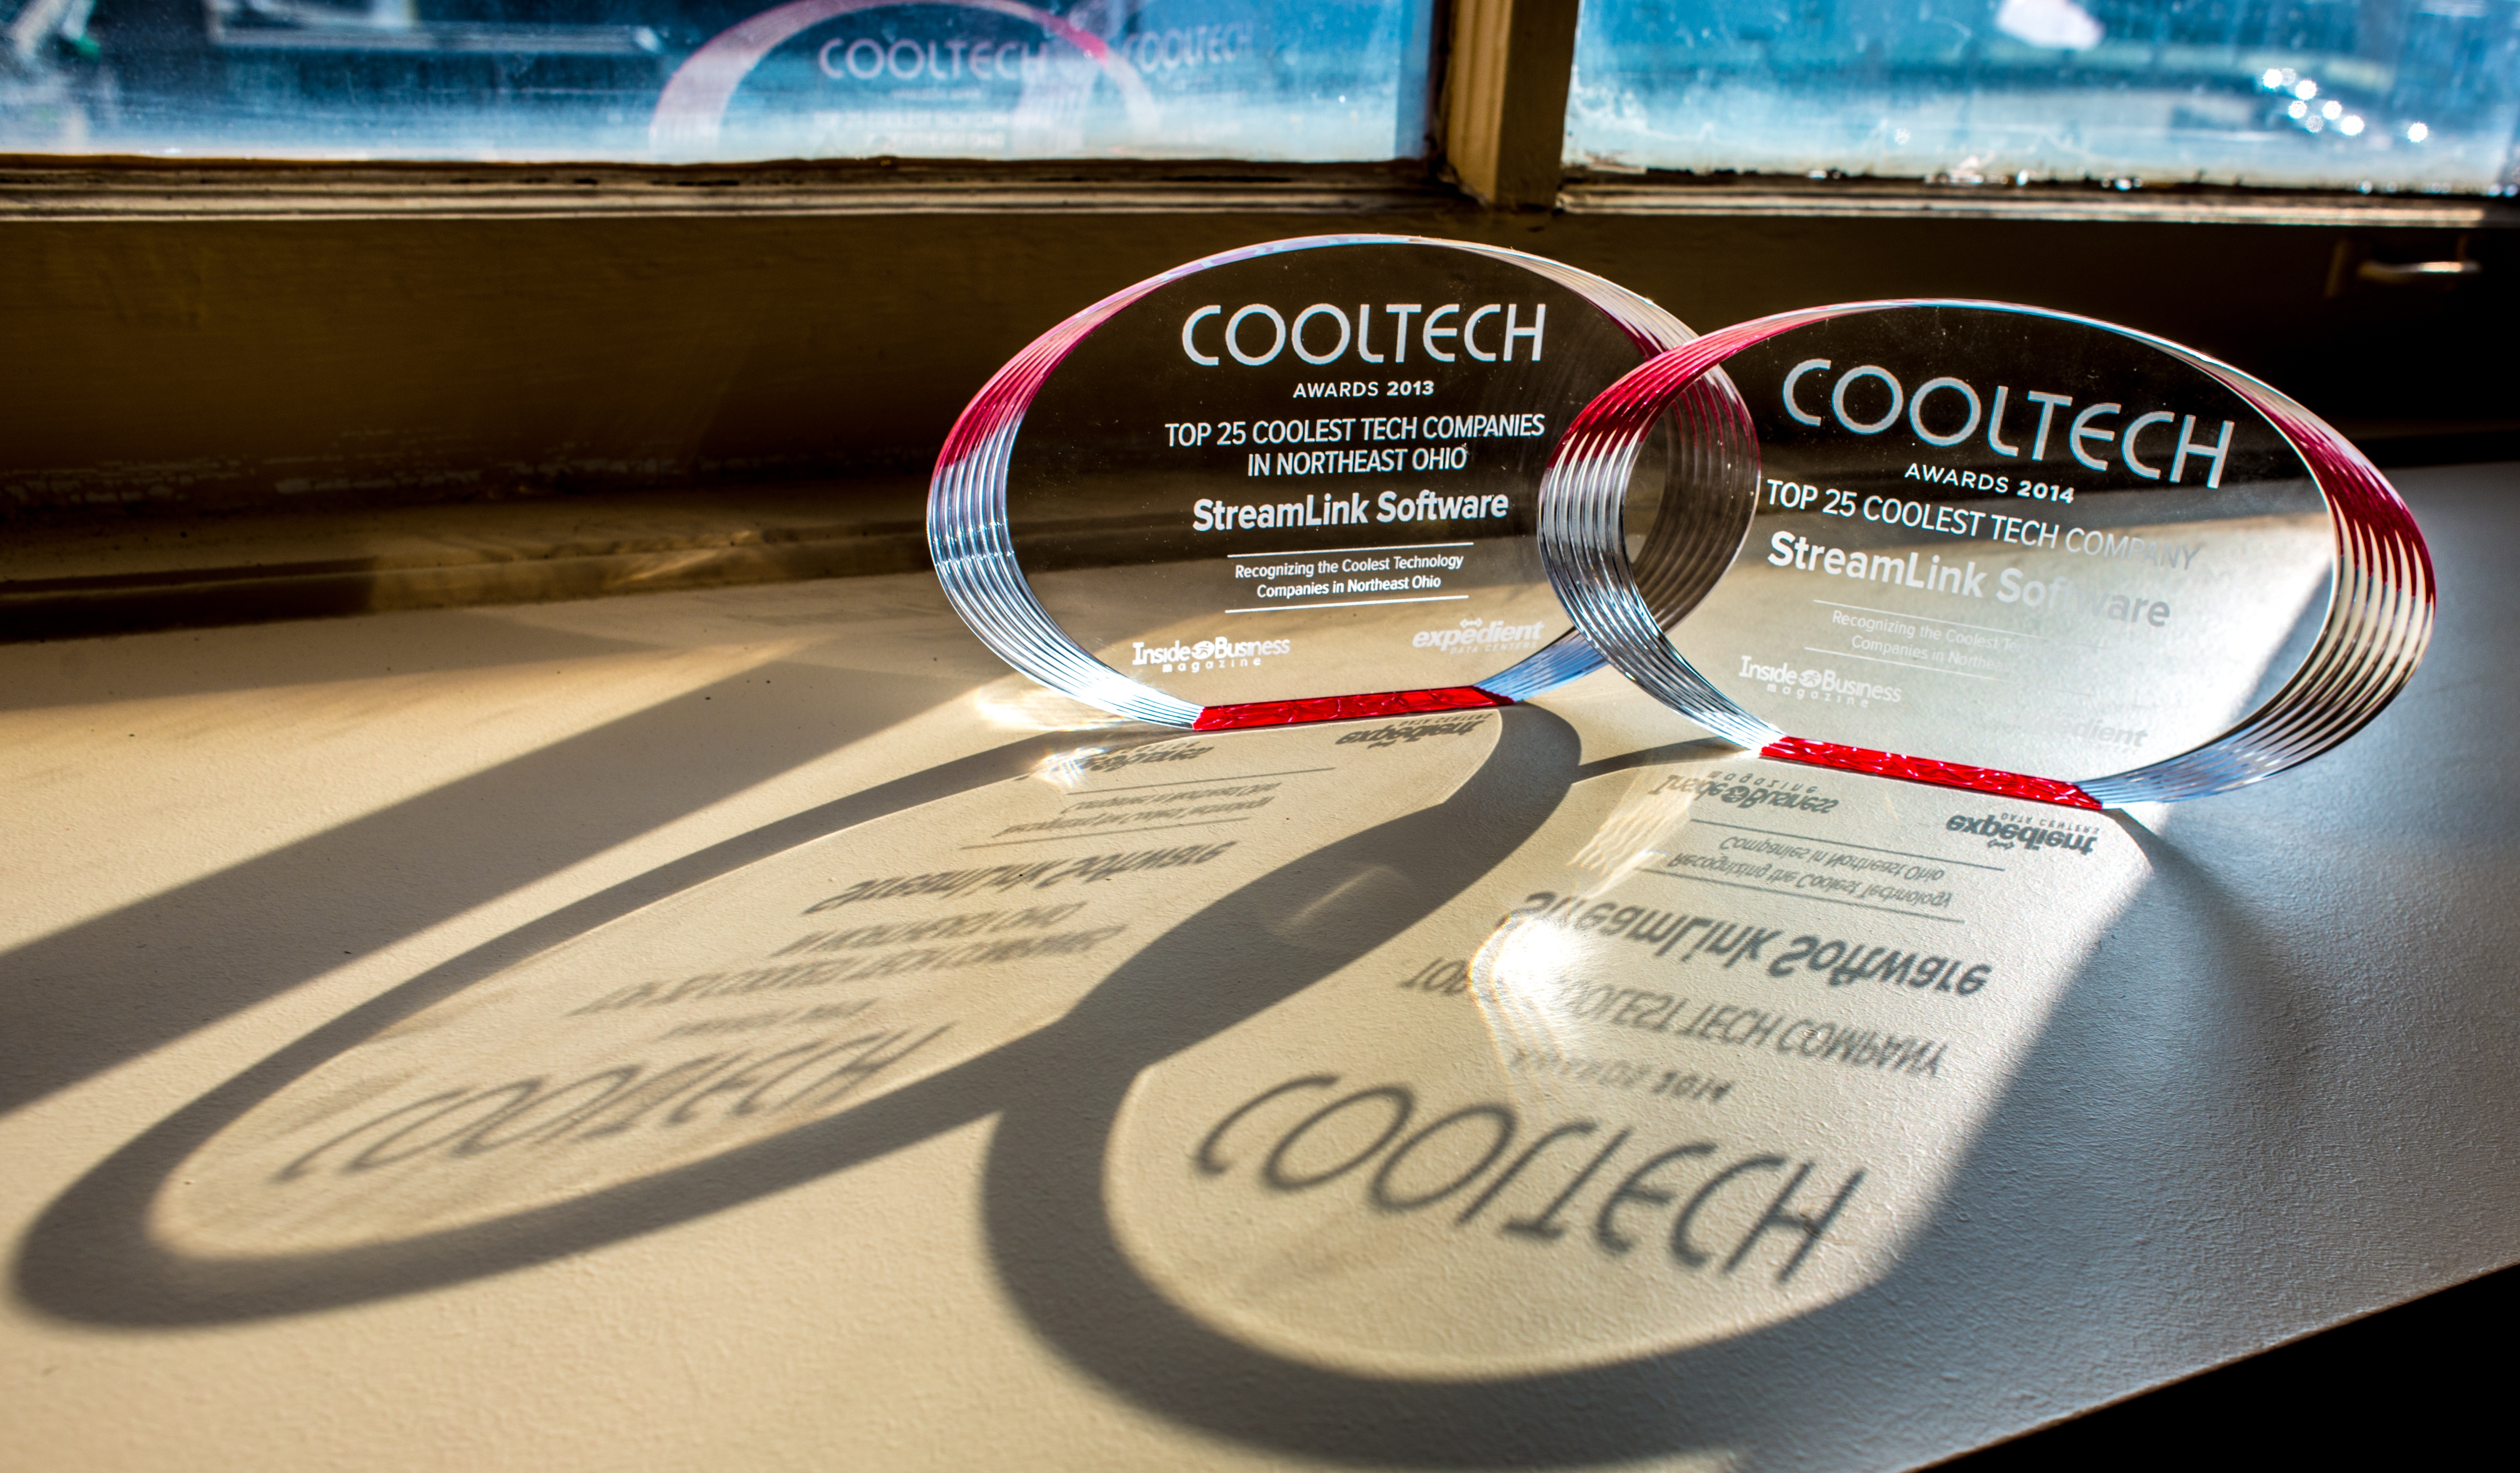 Cool Tech Award